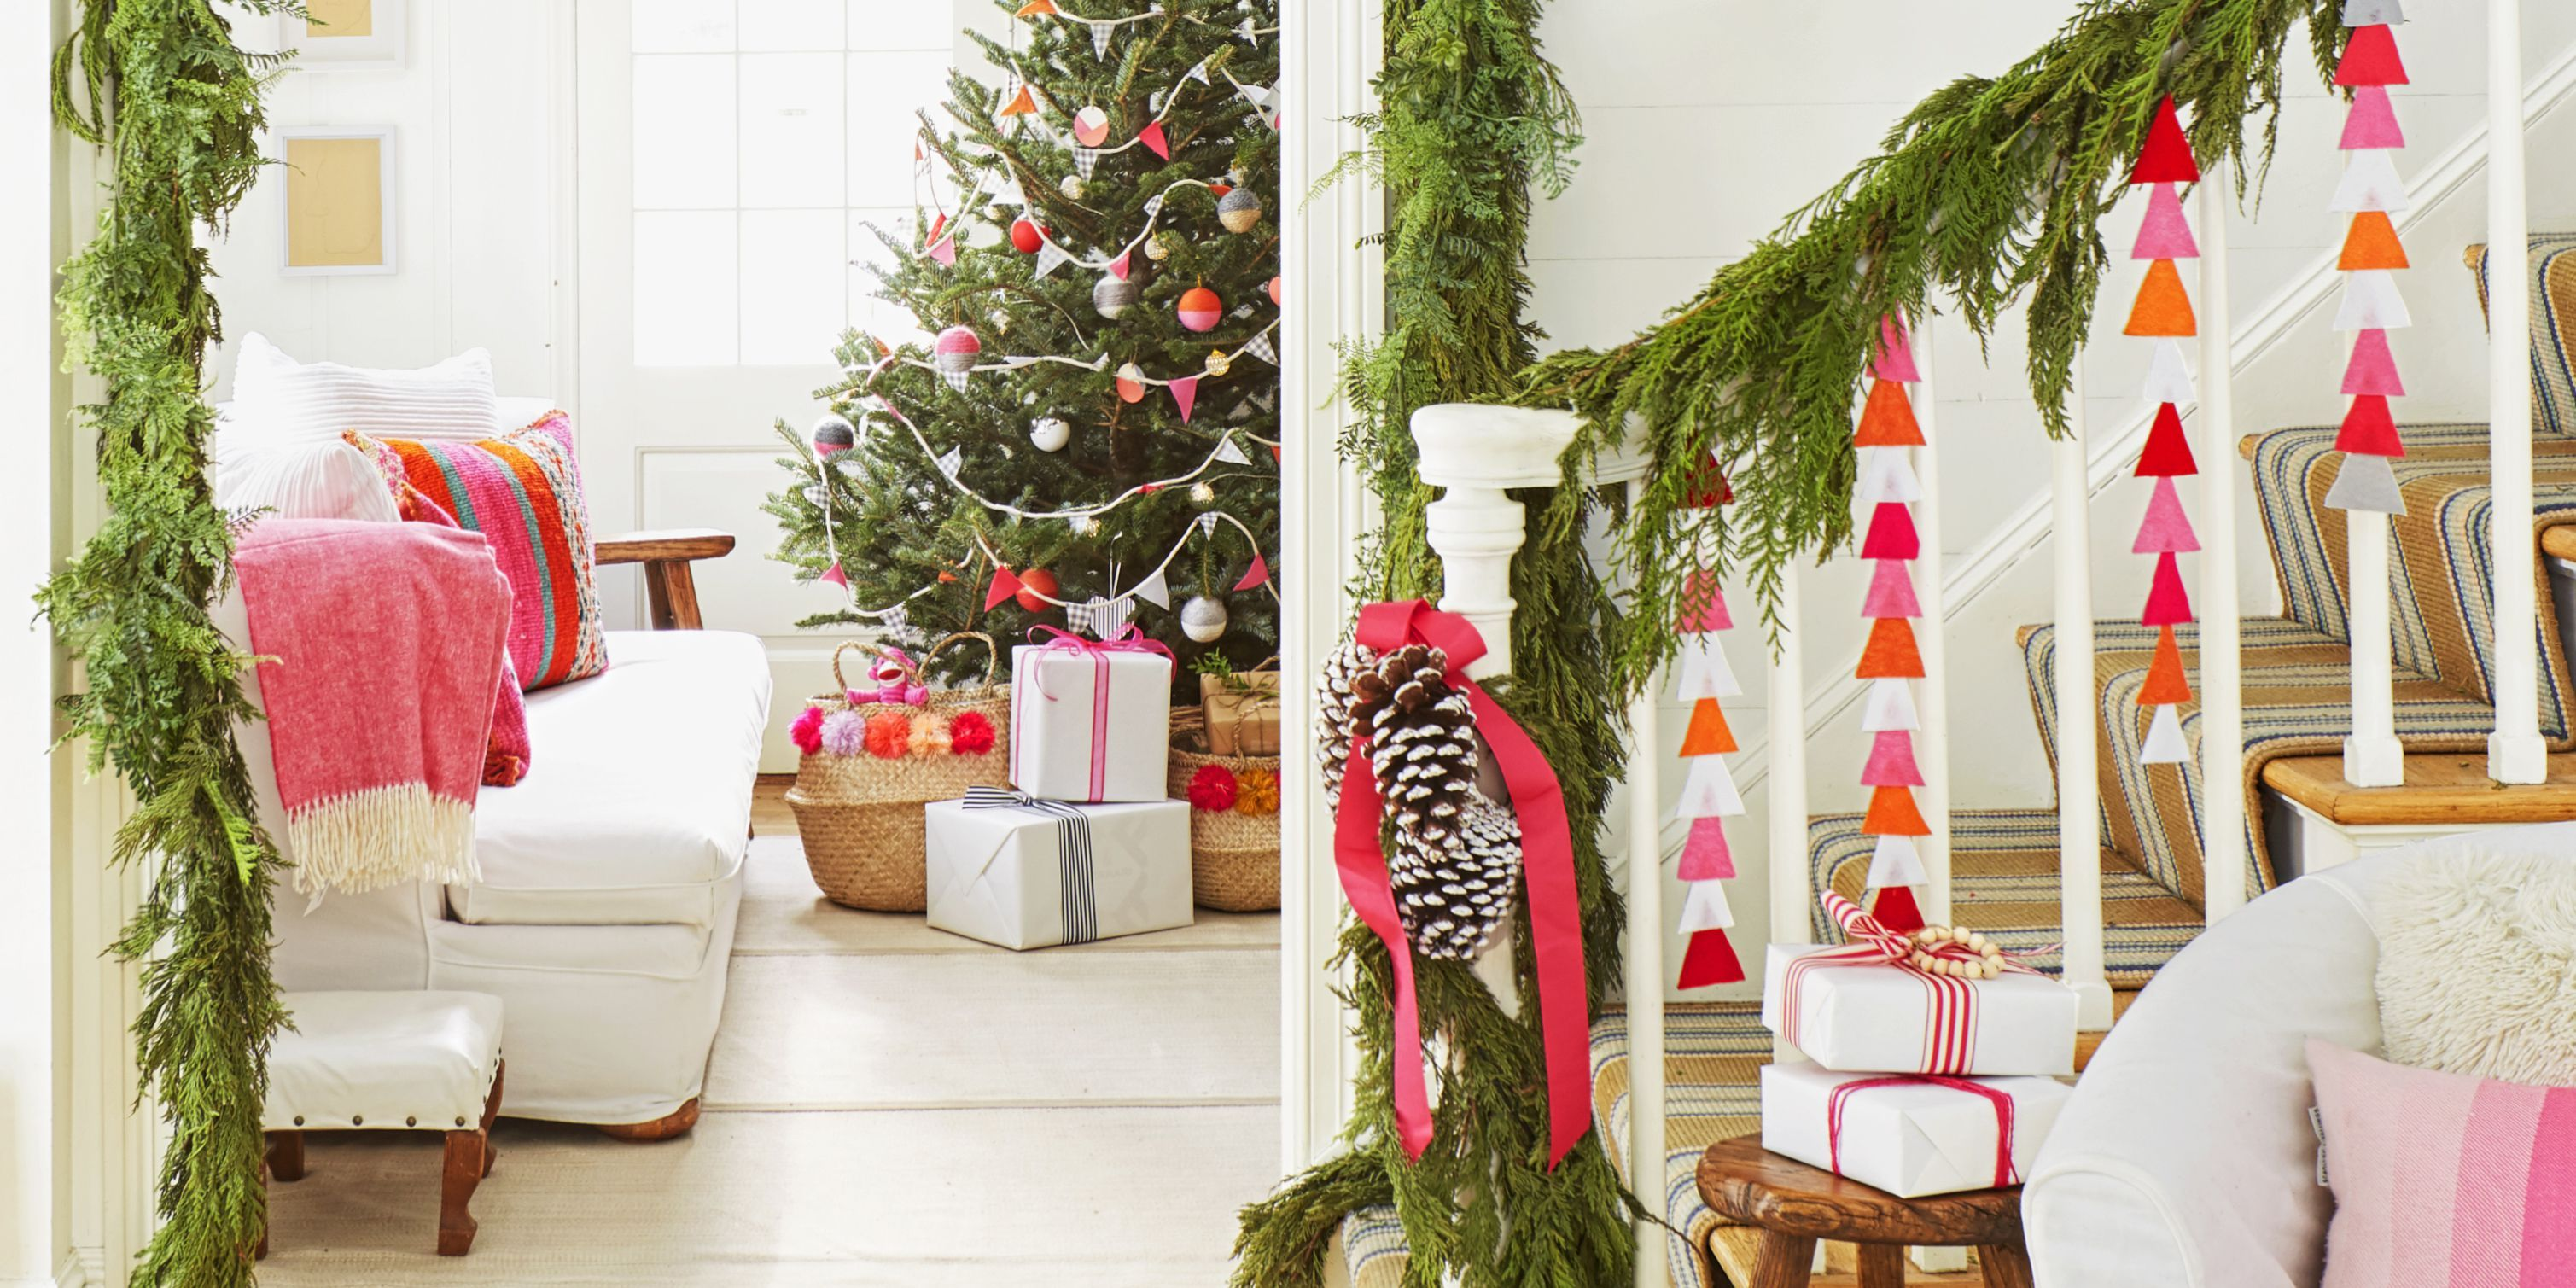 decor and design savvy decor and design ideas under 50 diy ideas for your home 70+ Christmas Decorating Ideas for a Joyful Holiday Home